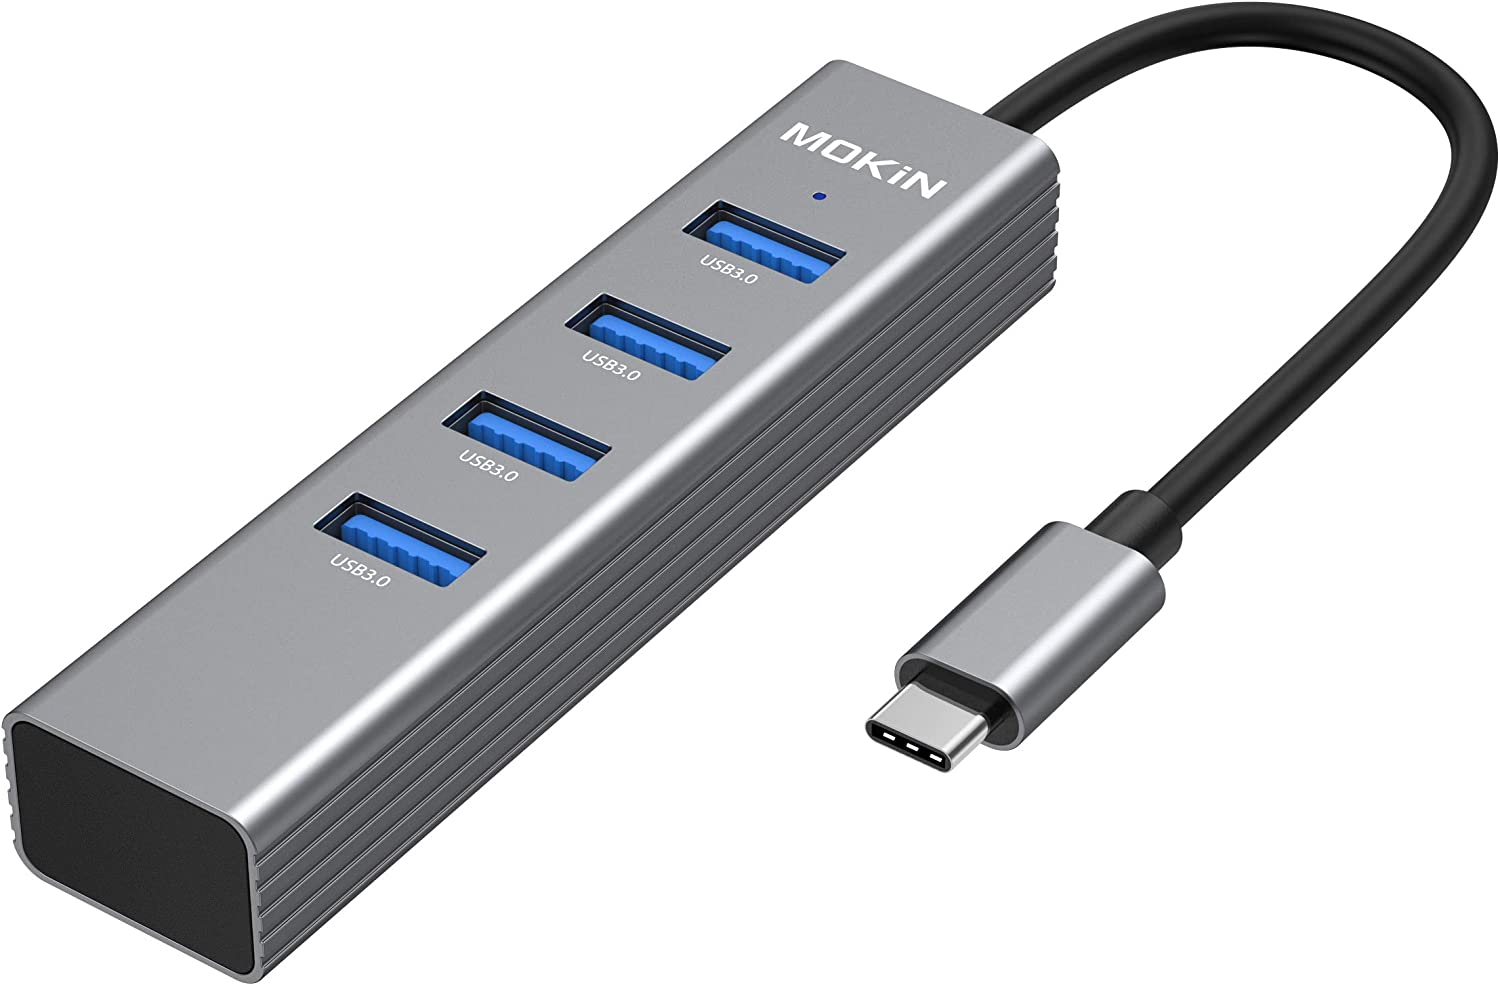 USB C to USB Adapter, Thunderbolt 3/USB Type C to USB 3.0 Adapter Hub for MacBook Pro/Air/iMac Pro 2019, Surface Go, Dell XPS 13 15, ChromeBook,Lenovo Yoga 920 and More